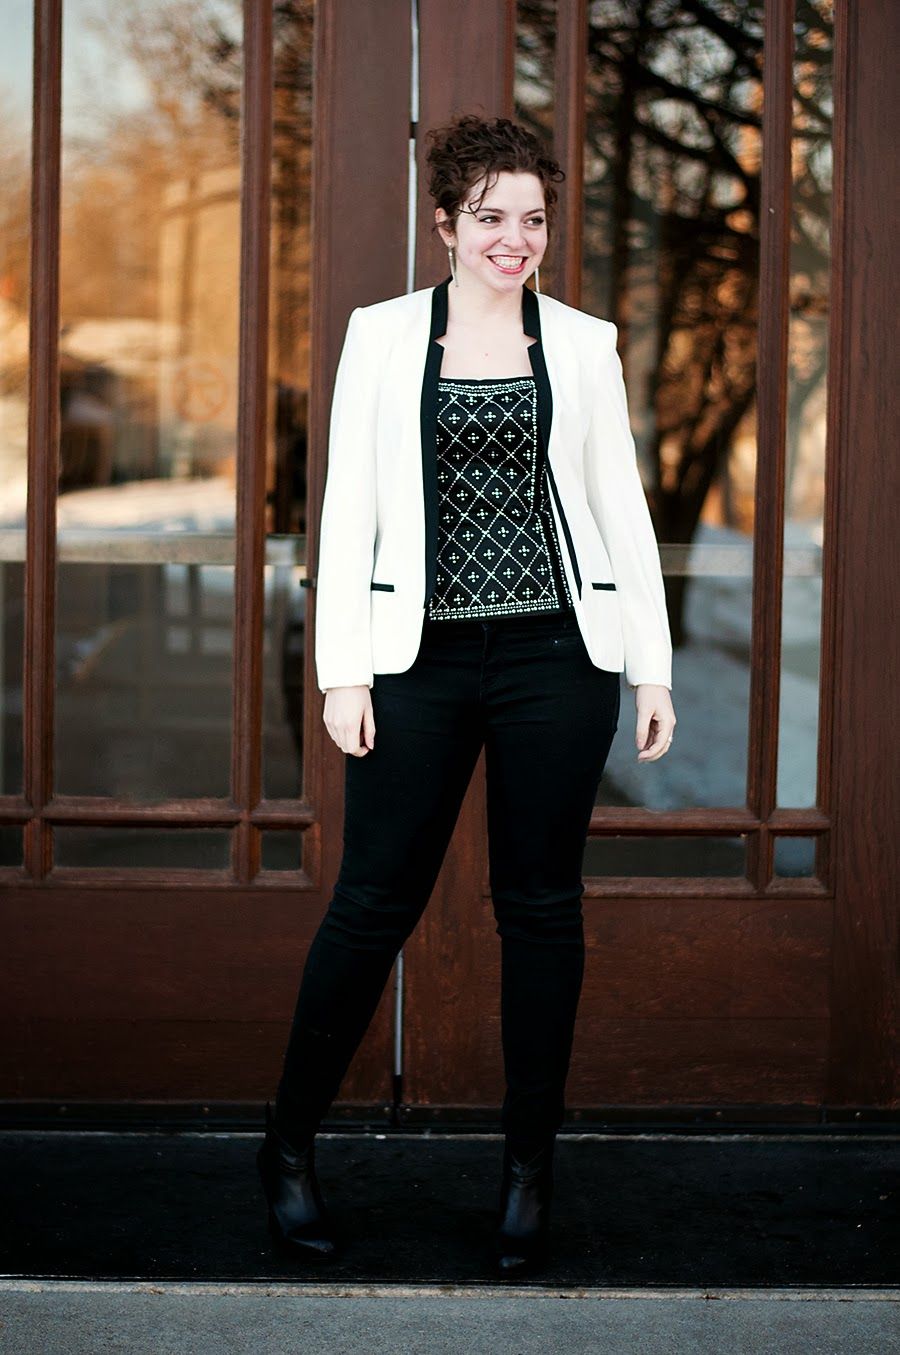 Studded Corset top with black and white blazer